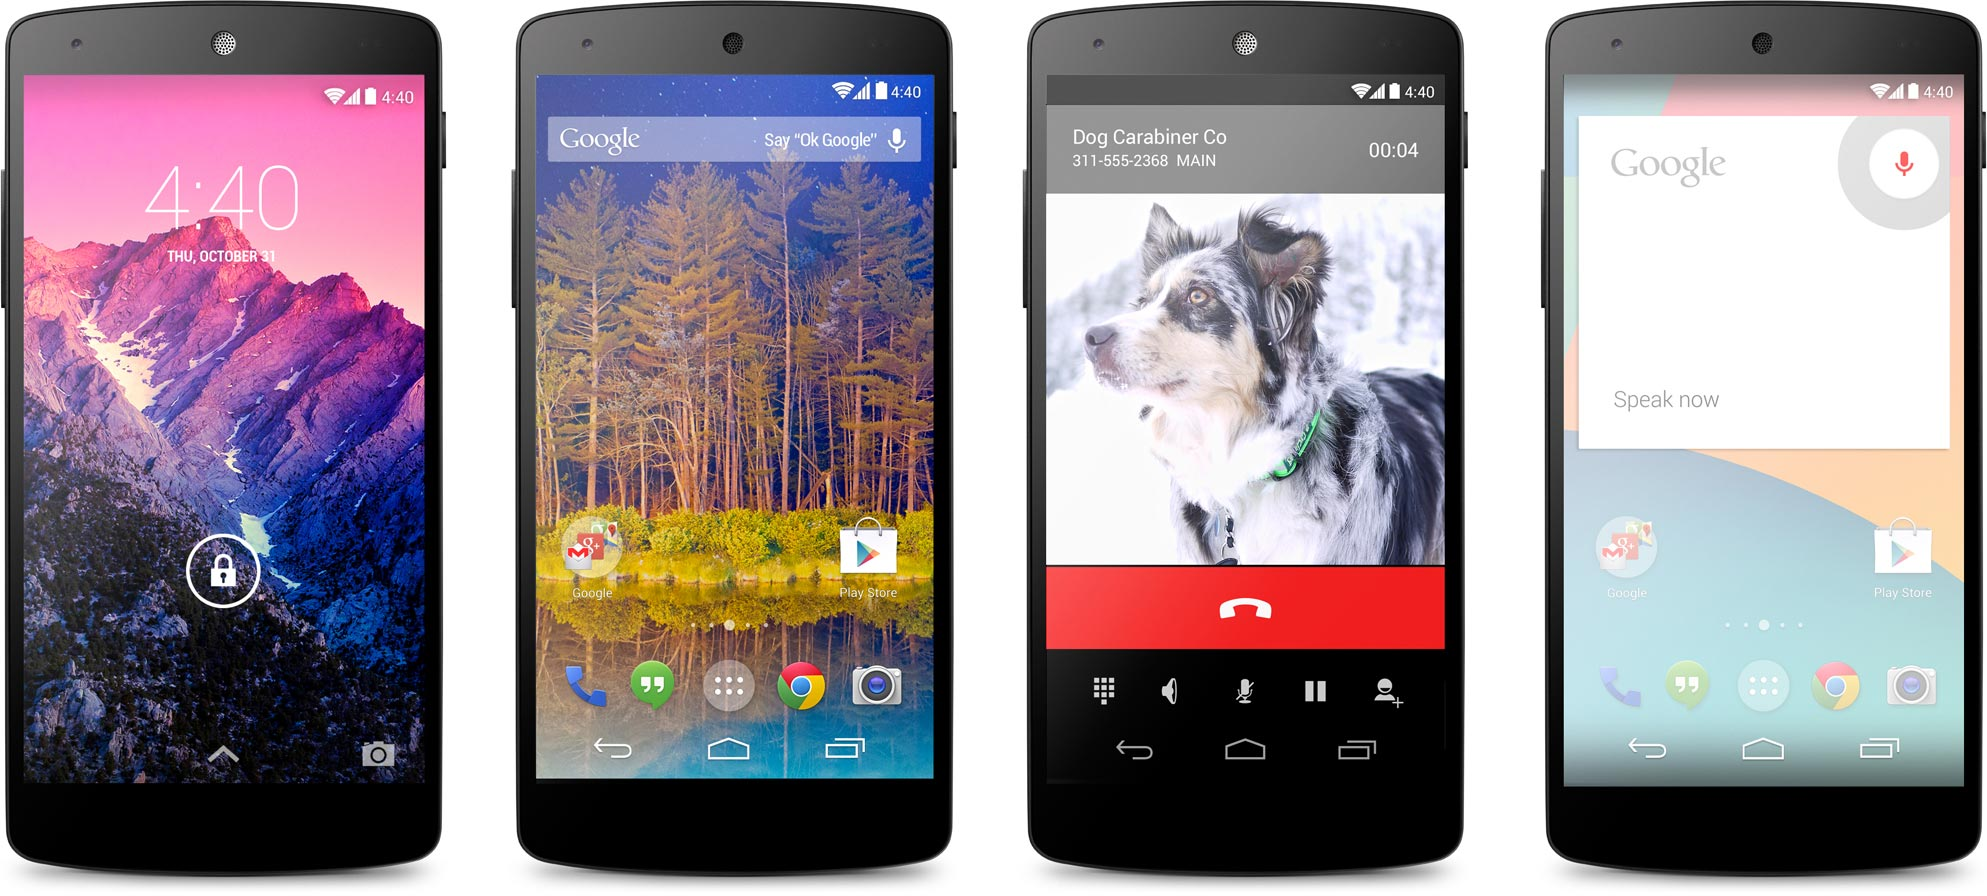 Google Nexus 5 coming to T-Mobile